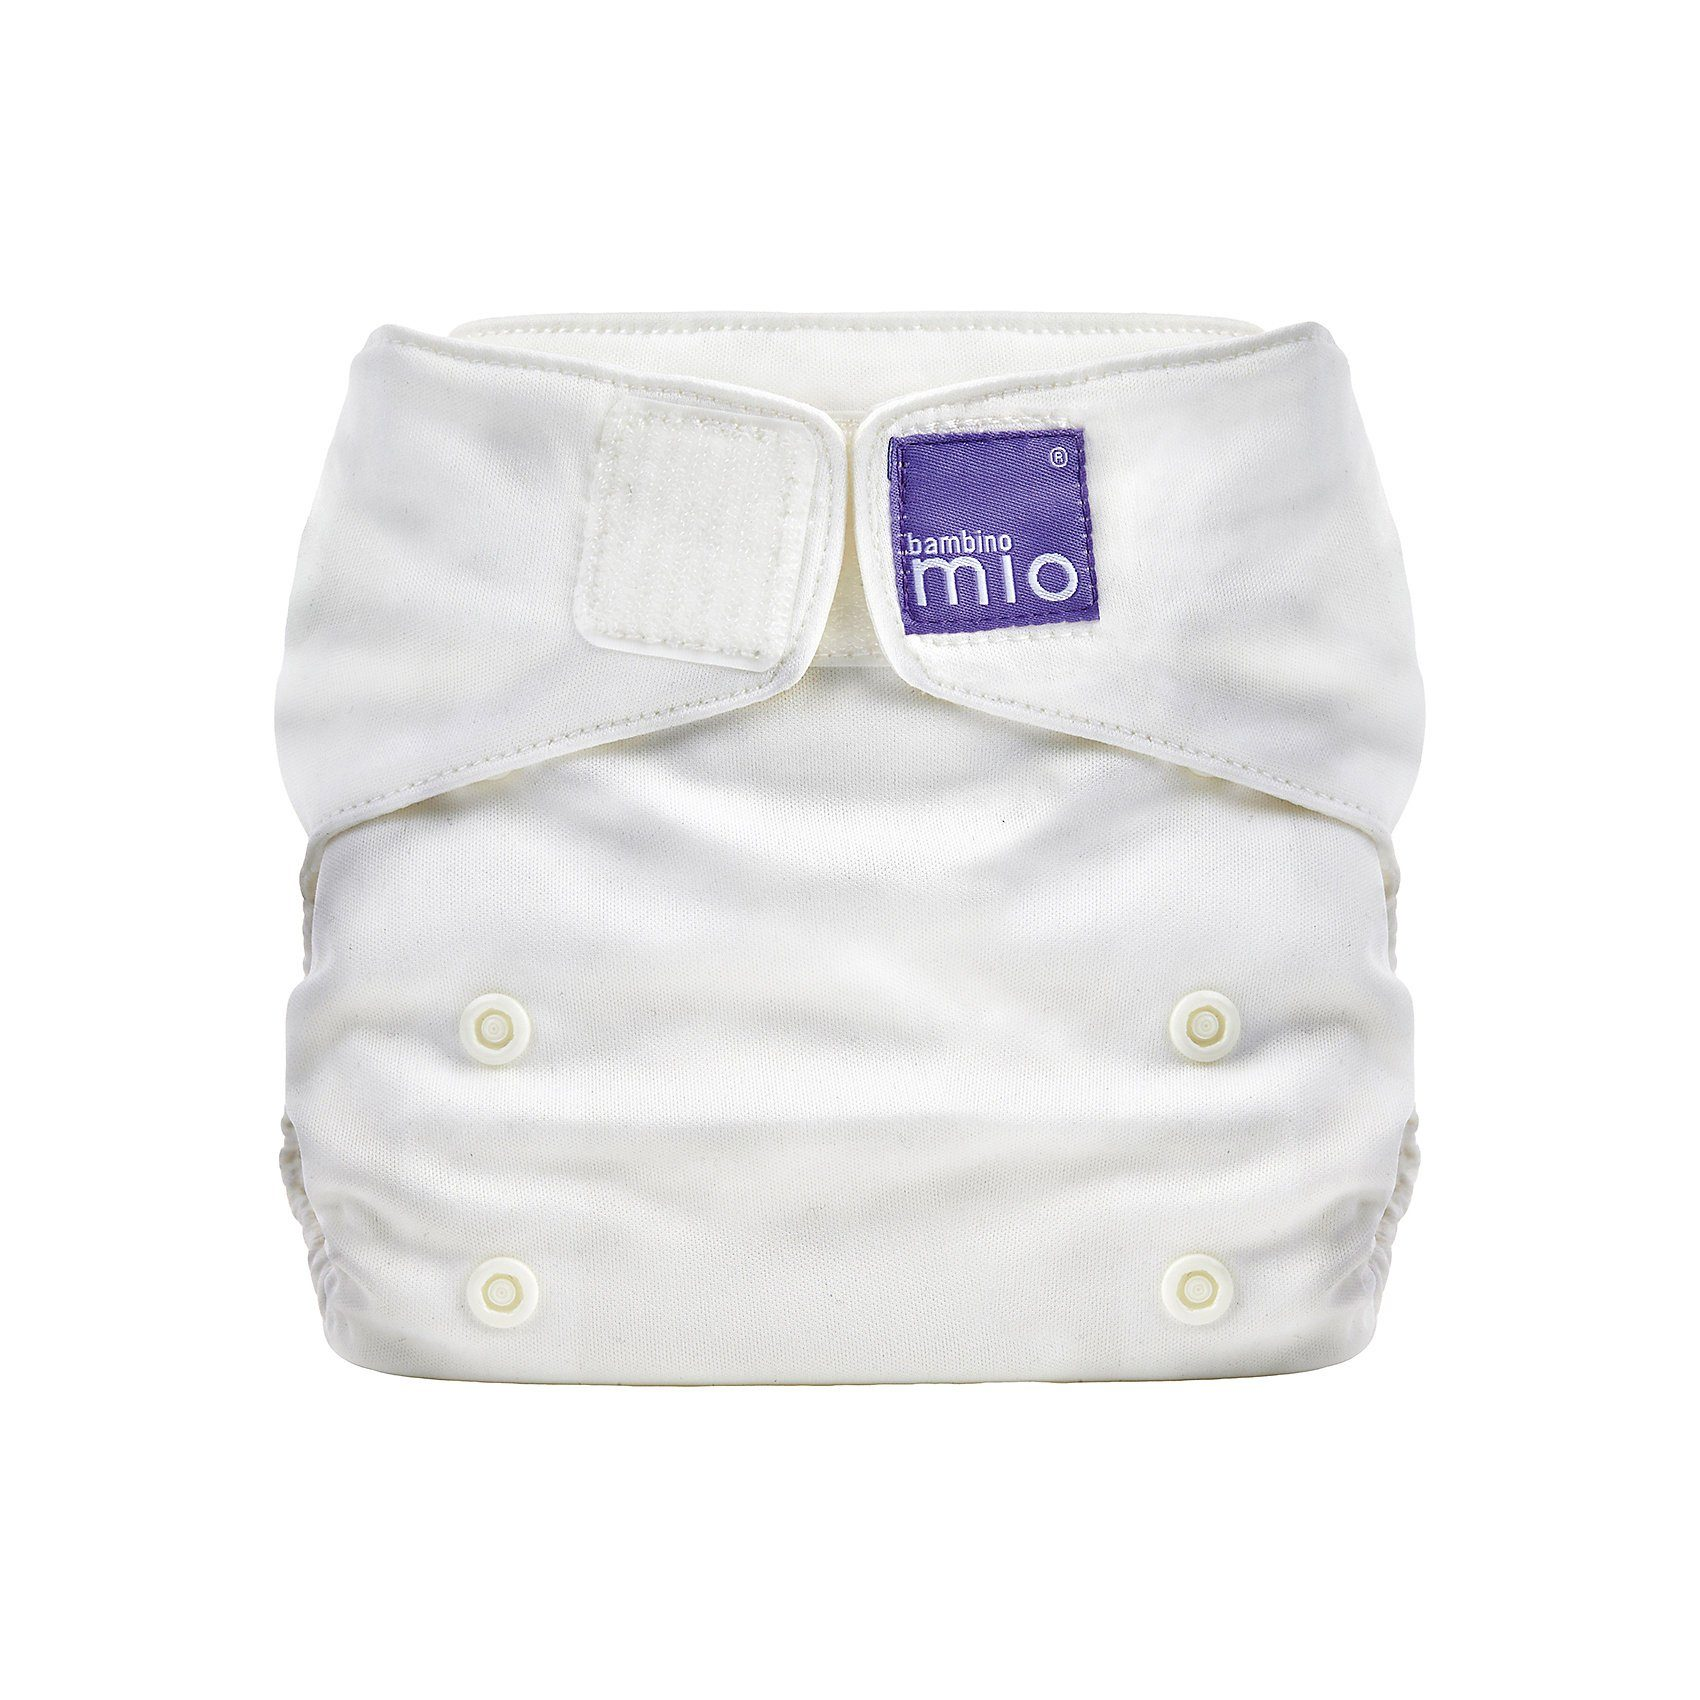 Miosolo All-in-One Windel, Marshmallow weiss